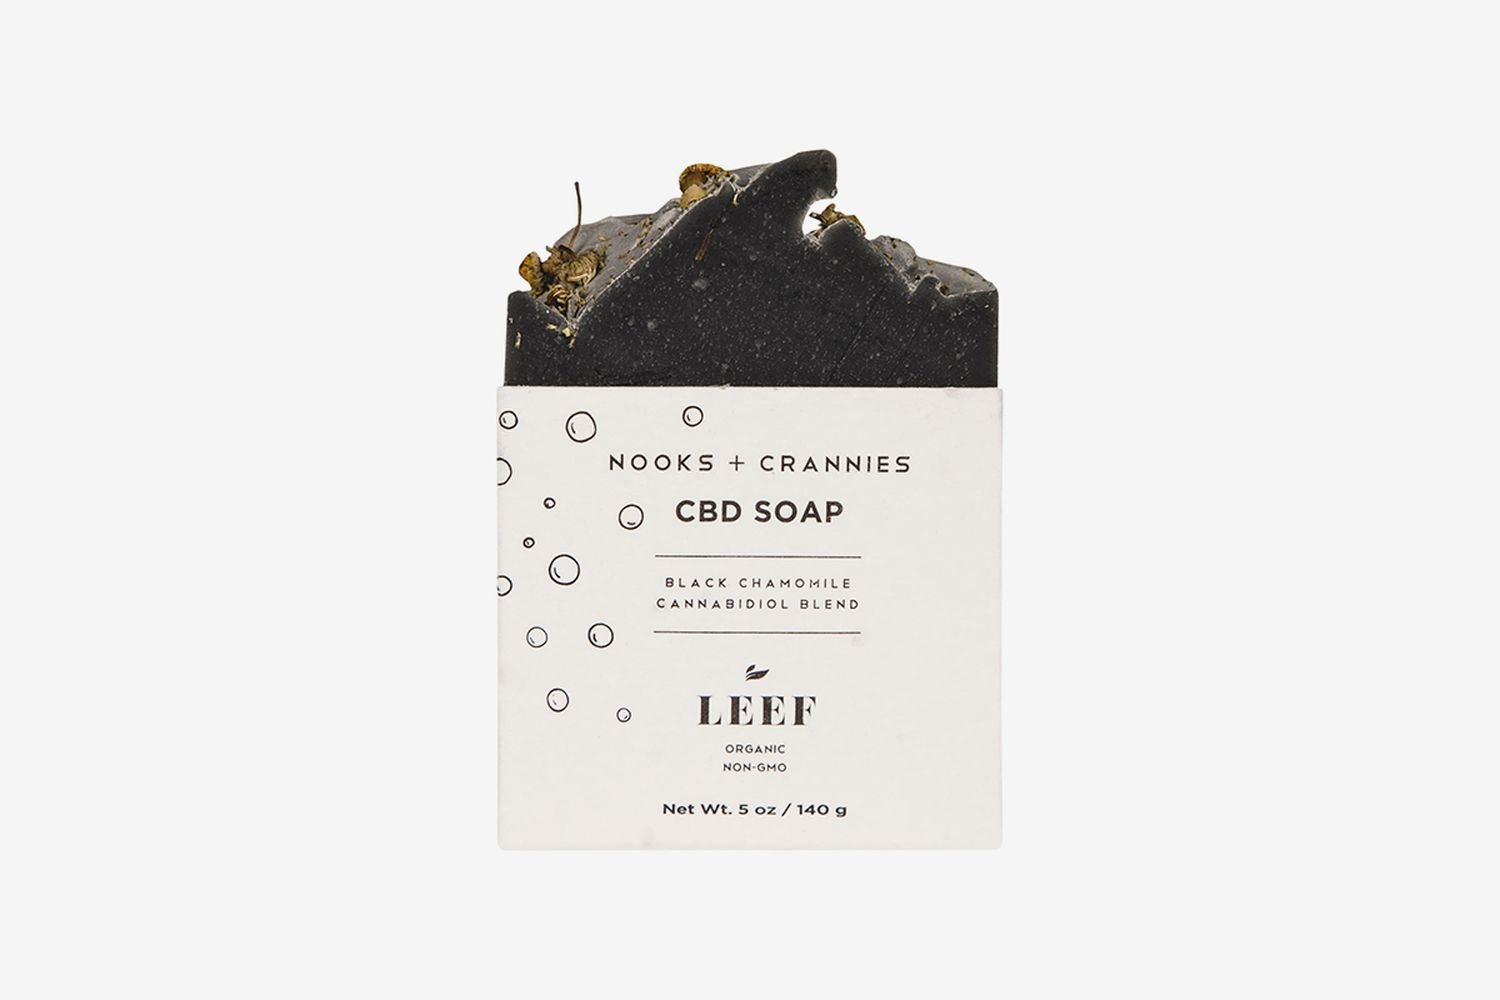 Nooks + Crannies CBD Soap